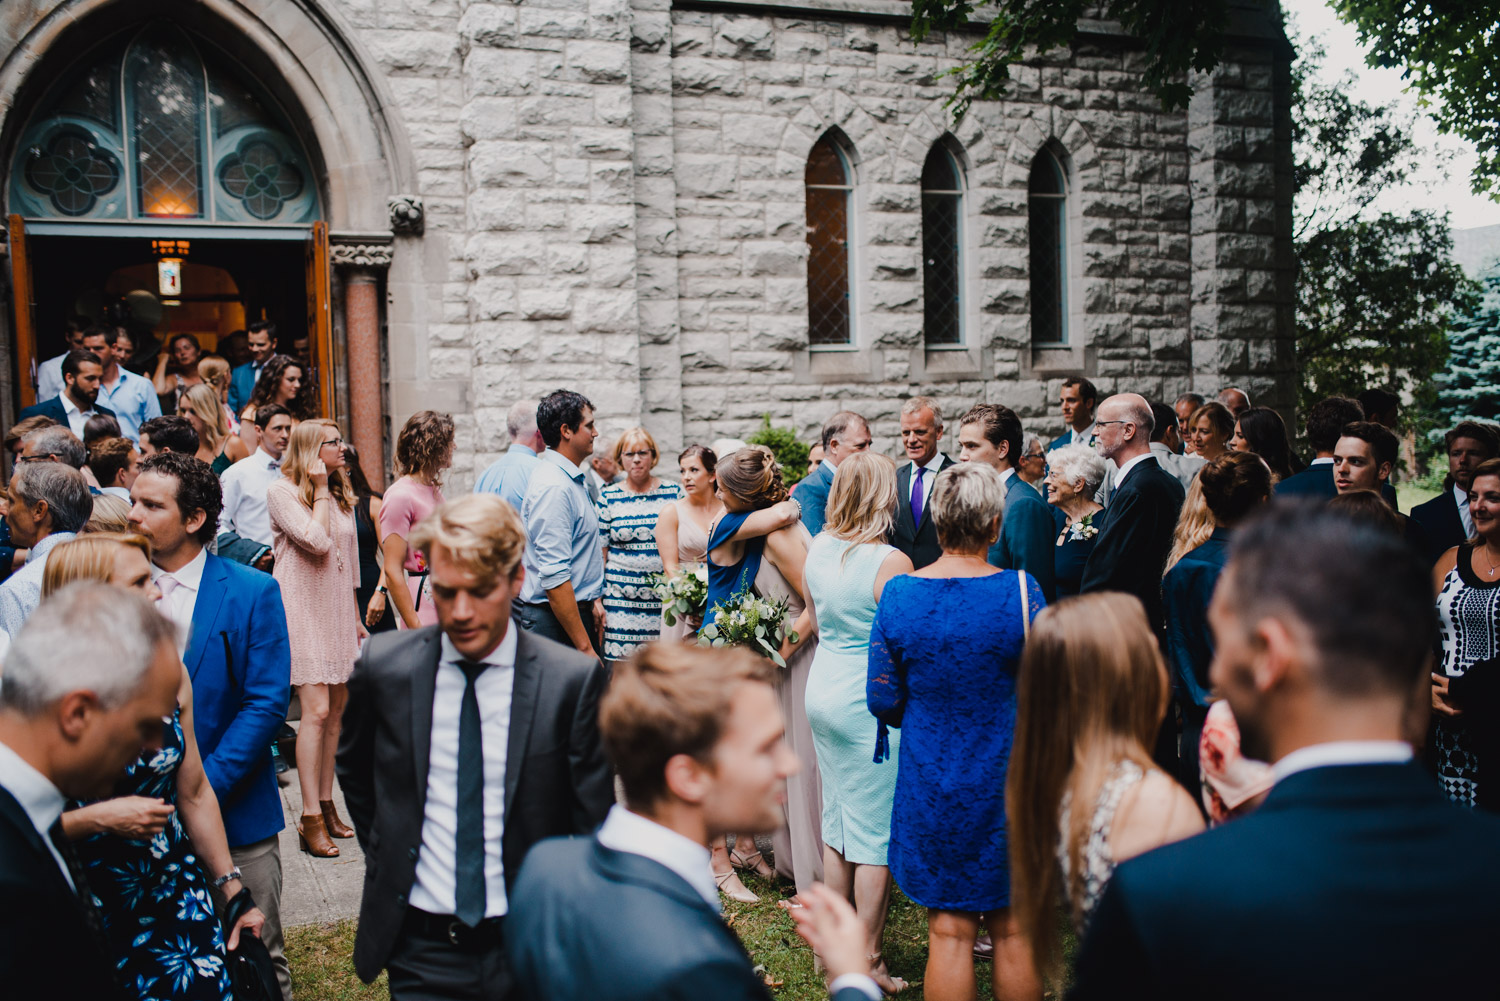 Guests gather outside of the church after the ceremony